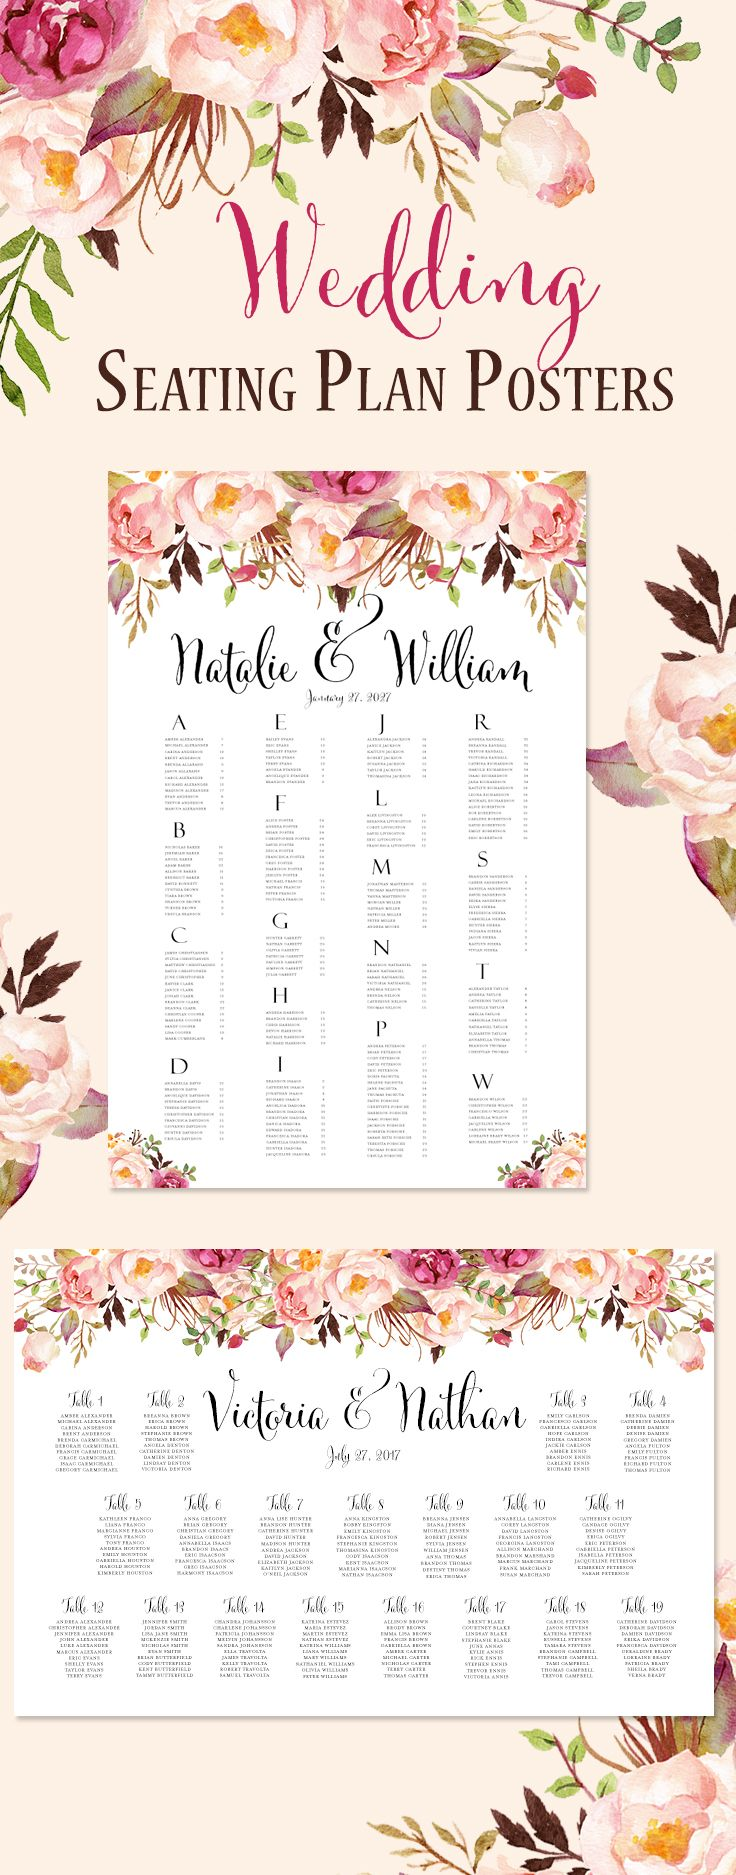 reception seating chart posters ready in 24 hours  available in either table number or